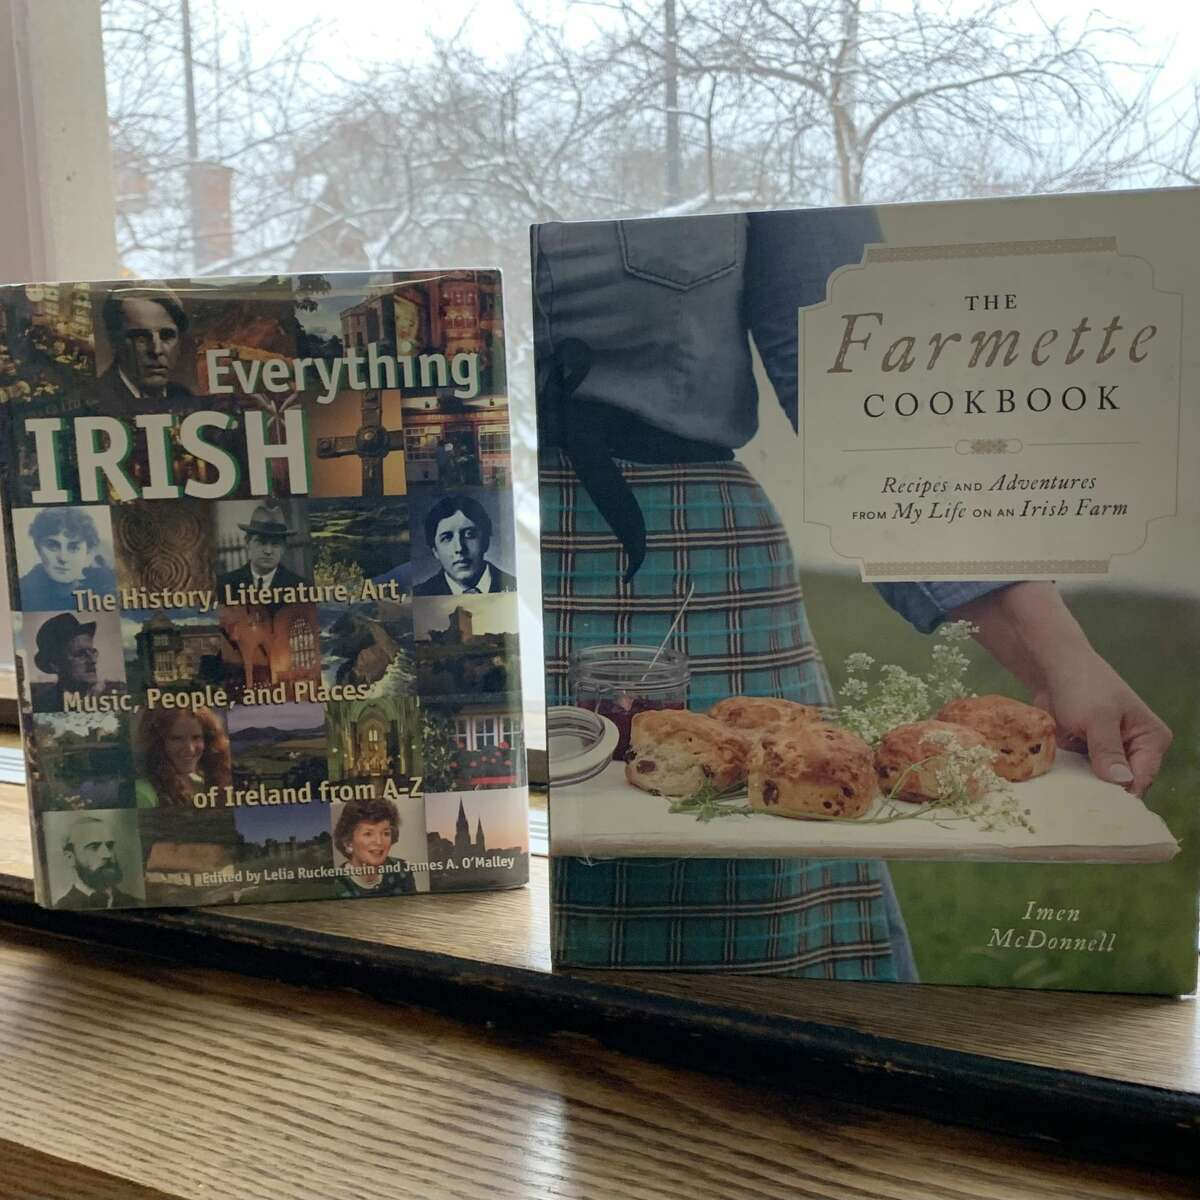 """""""The Farmette cookbook: Recipes and adventures from my life on an Irish farm"""" by Imen McDonnell takes the reader on a journey to the countryside. Join the author as she shares traditional kitchen skills and wisdom or forages for wild edibles."""